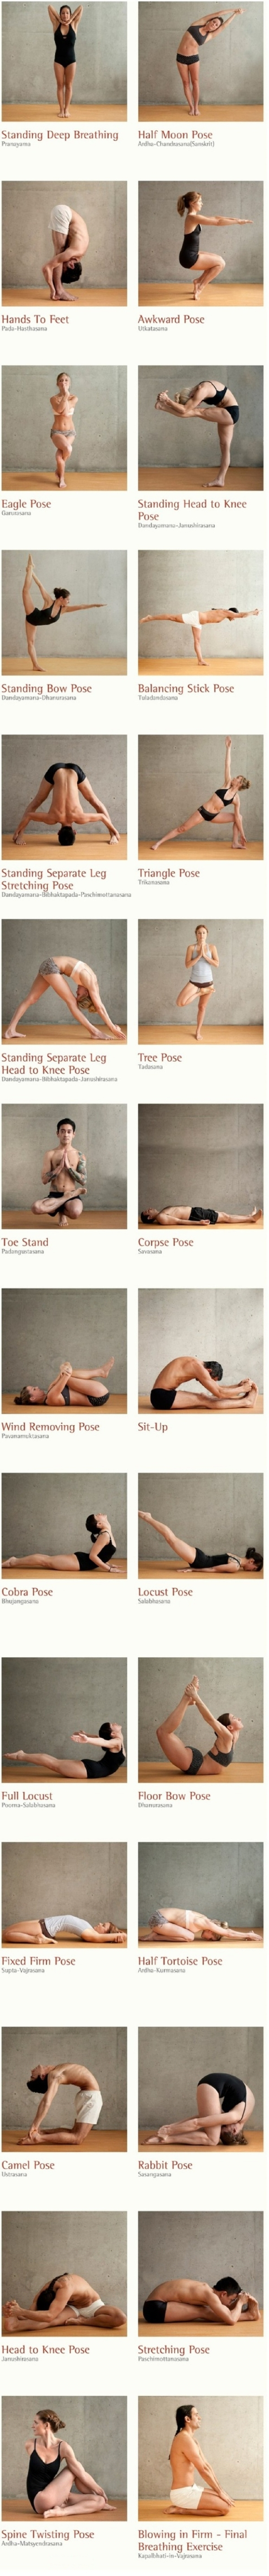 The best yoga poses filmstrip. Here are 26 different yoga poses and 2 breathing excercises to work out your body inside out. Stimulate your organs, glands and nerves. Increse the oxidization through your whole body. by chasity